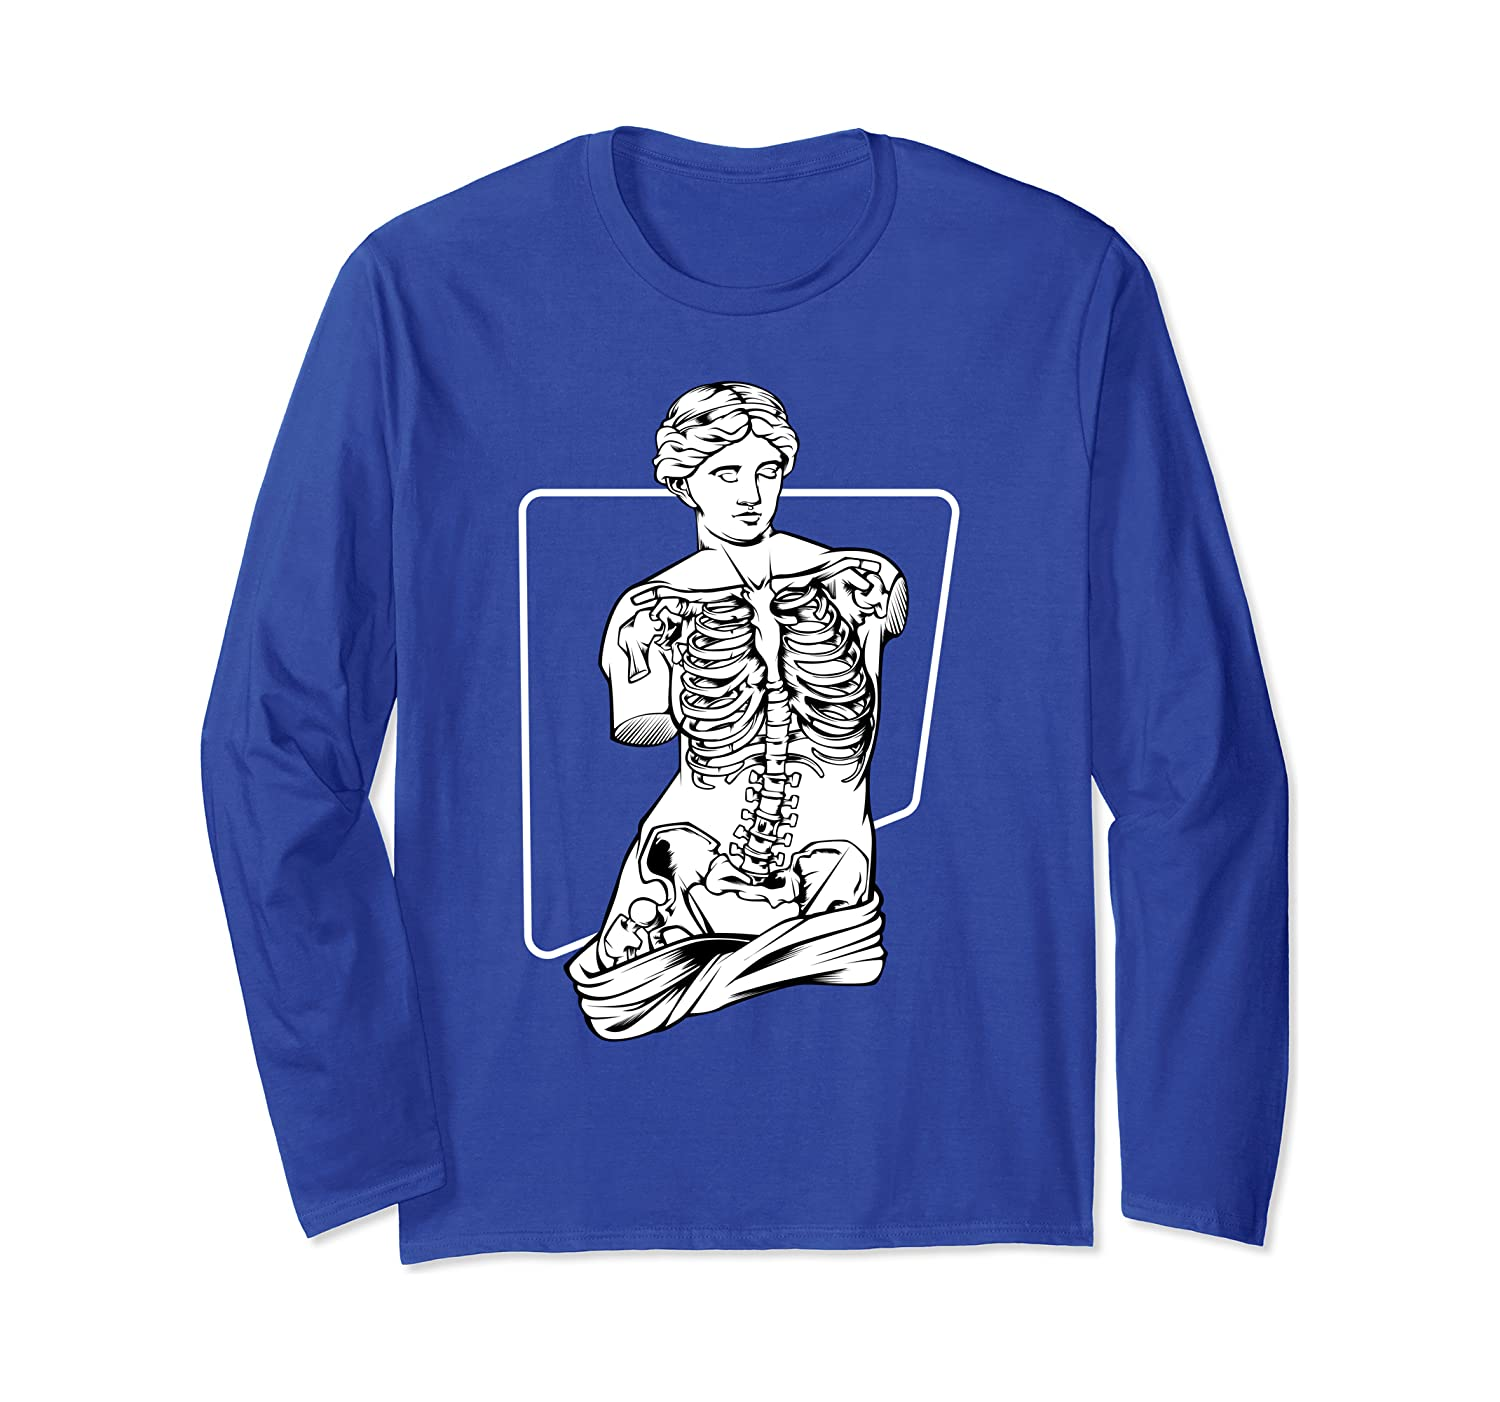 Amazon Com Venus Skeleton Shirt Aesthetic Vaporwave Soft Grunge Tee Long Sleeve T Shirt Clothing